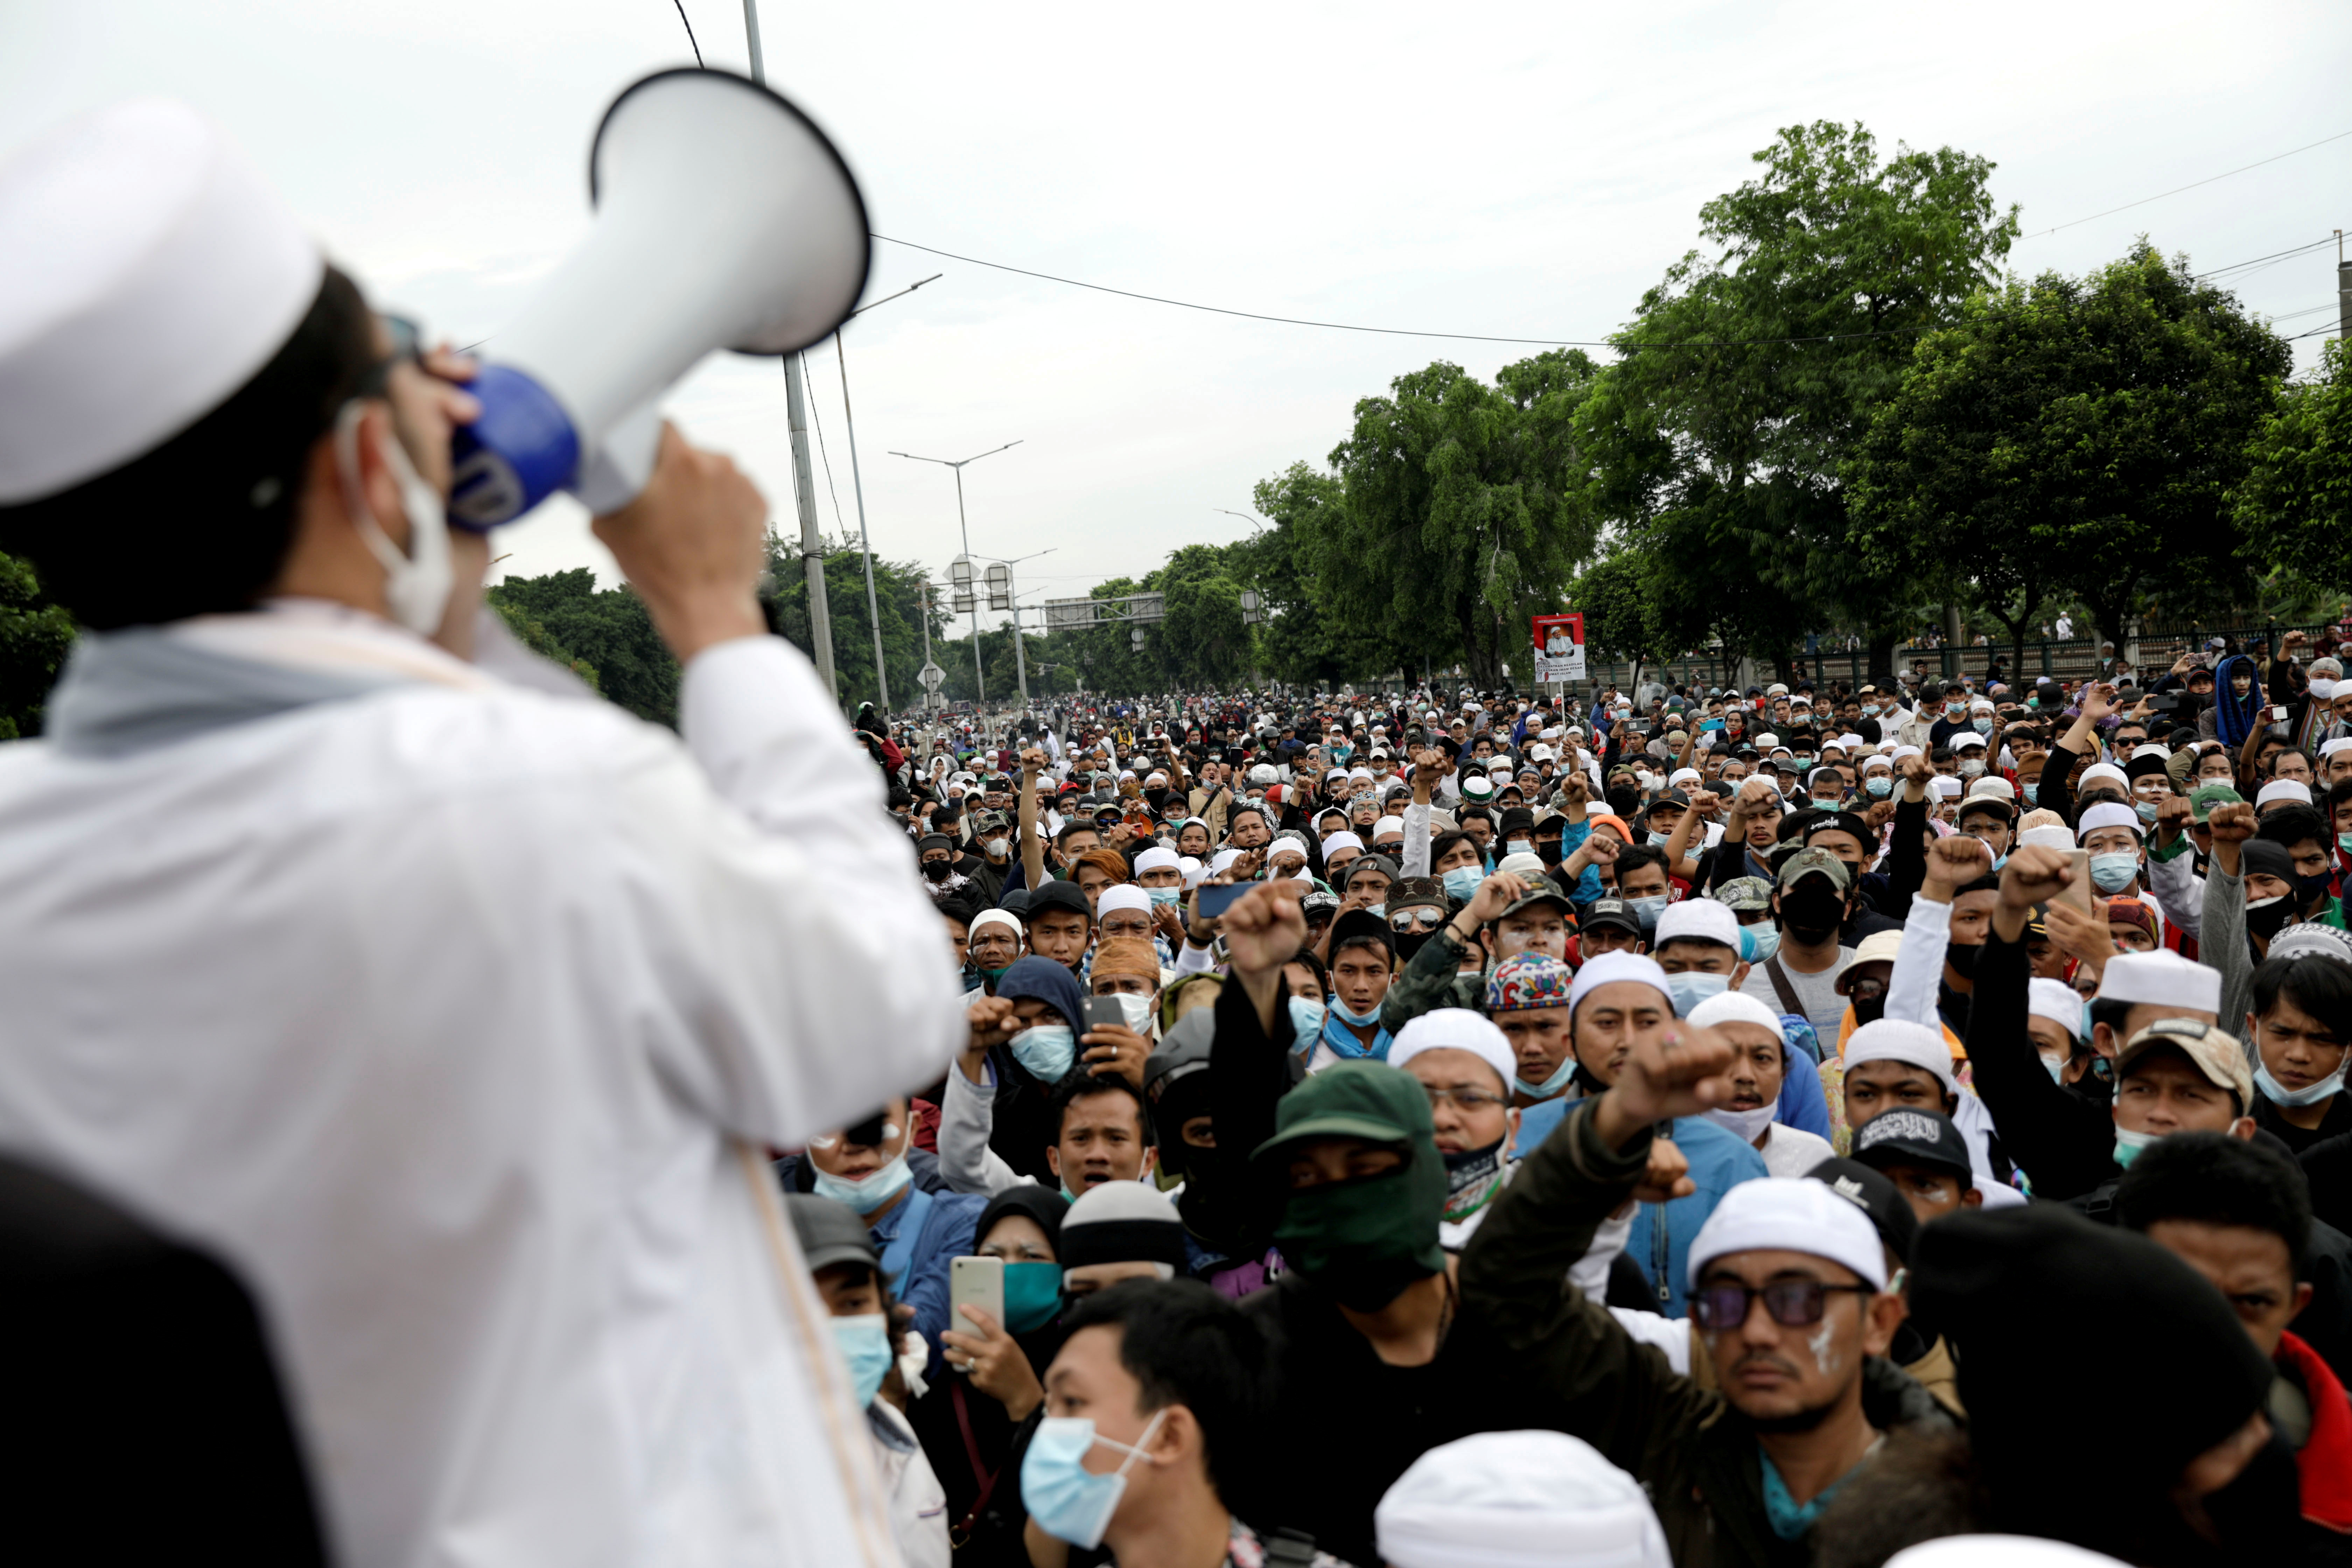 People gather during a protest supporting Rizieq Shihab, an Indonesian Islamic cleric who is sentenced for breaching coronavirus disease (COVID-19) curbs after his return last year from self-imposed exile, in Jakarta, Indonesia, June 24, 2021. REUTERS/Willy Kurniawan